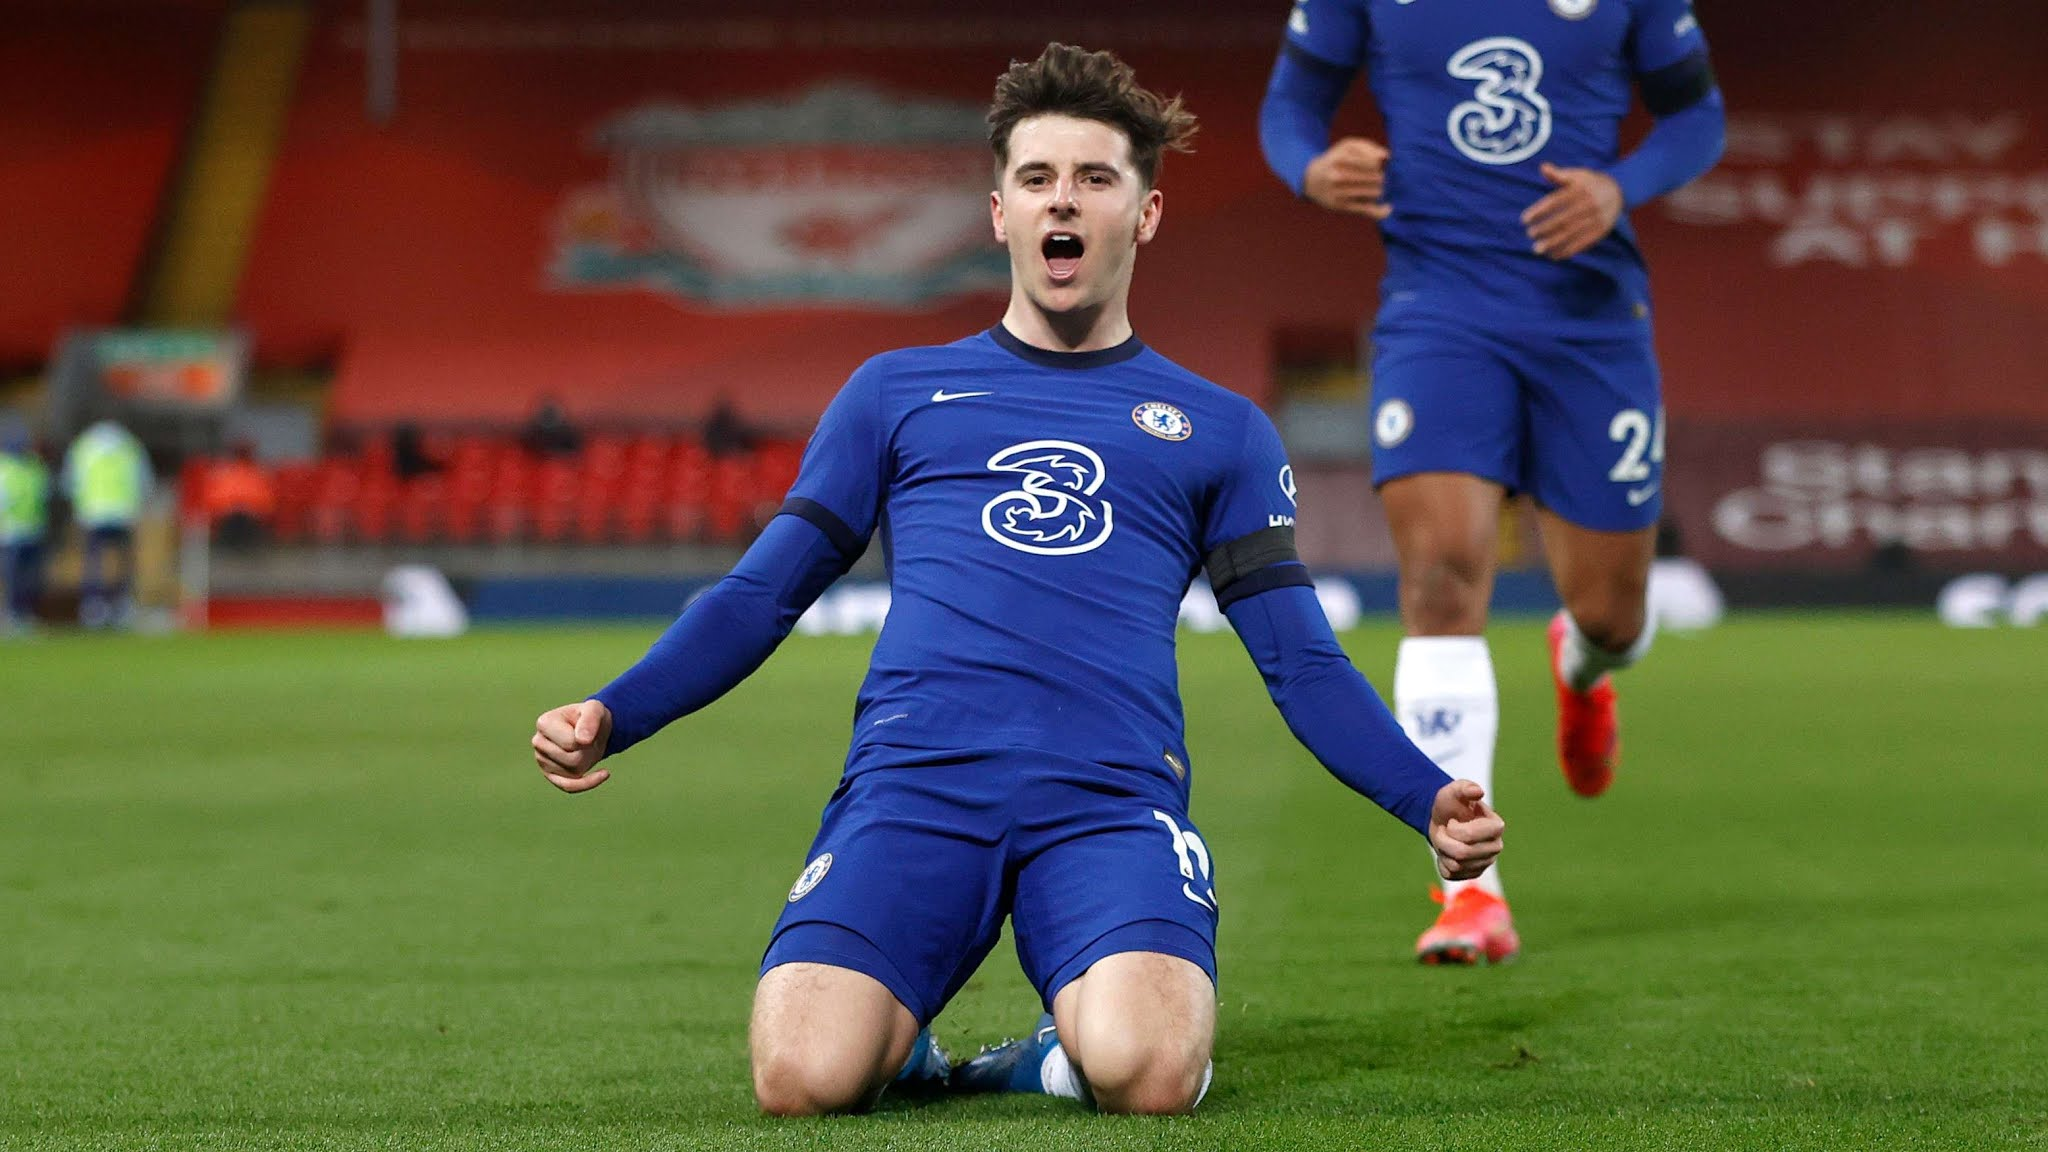 Chelsea were victorious at Anfield and will now set his sights on the other Merseyside team Everton